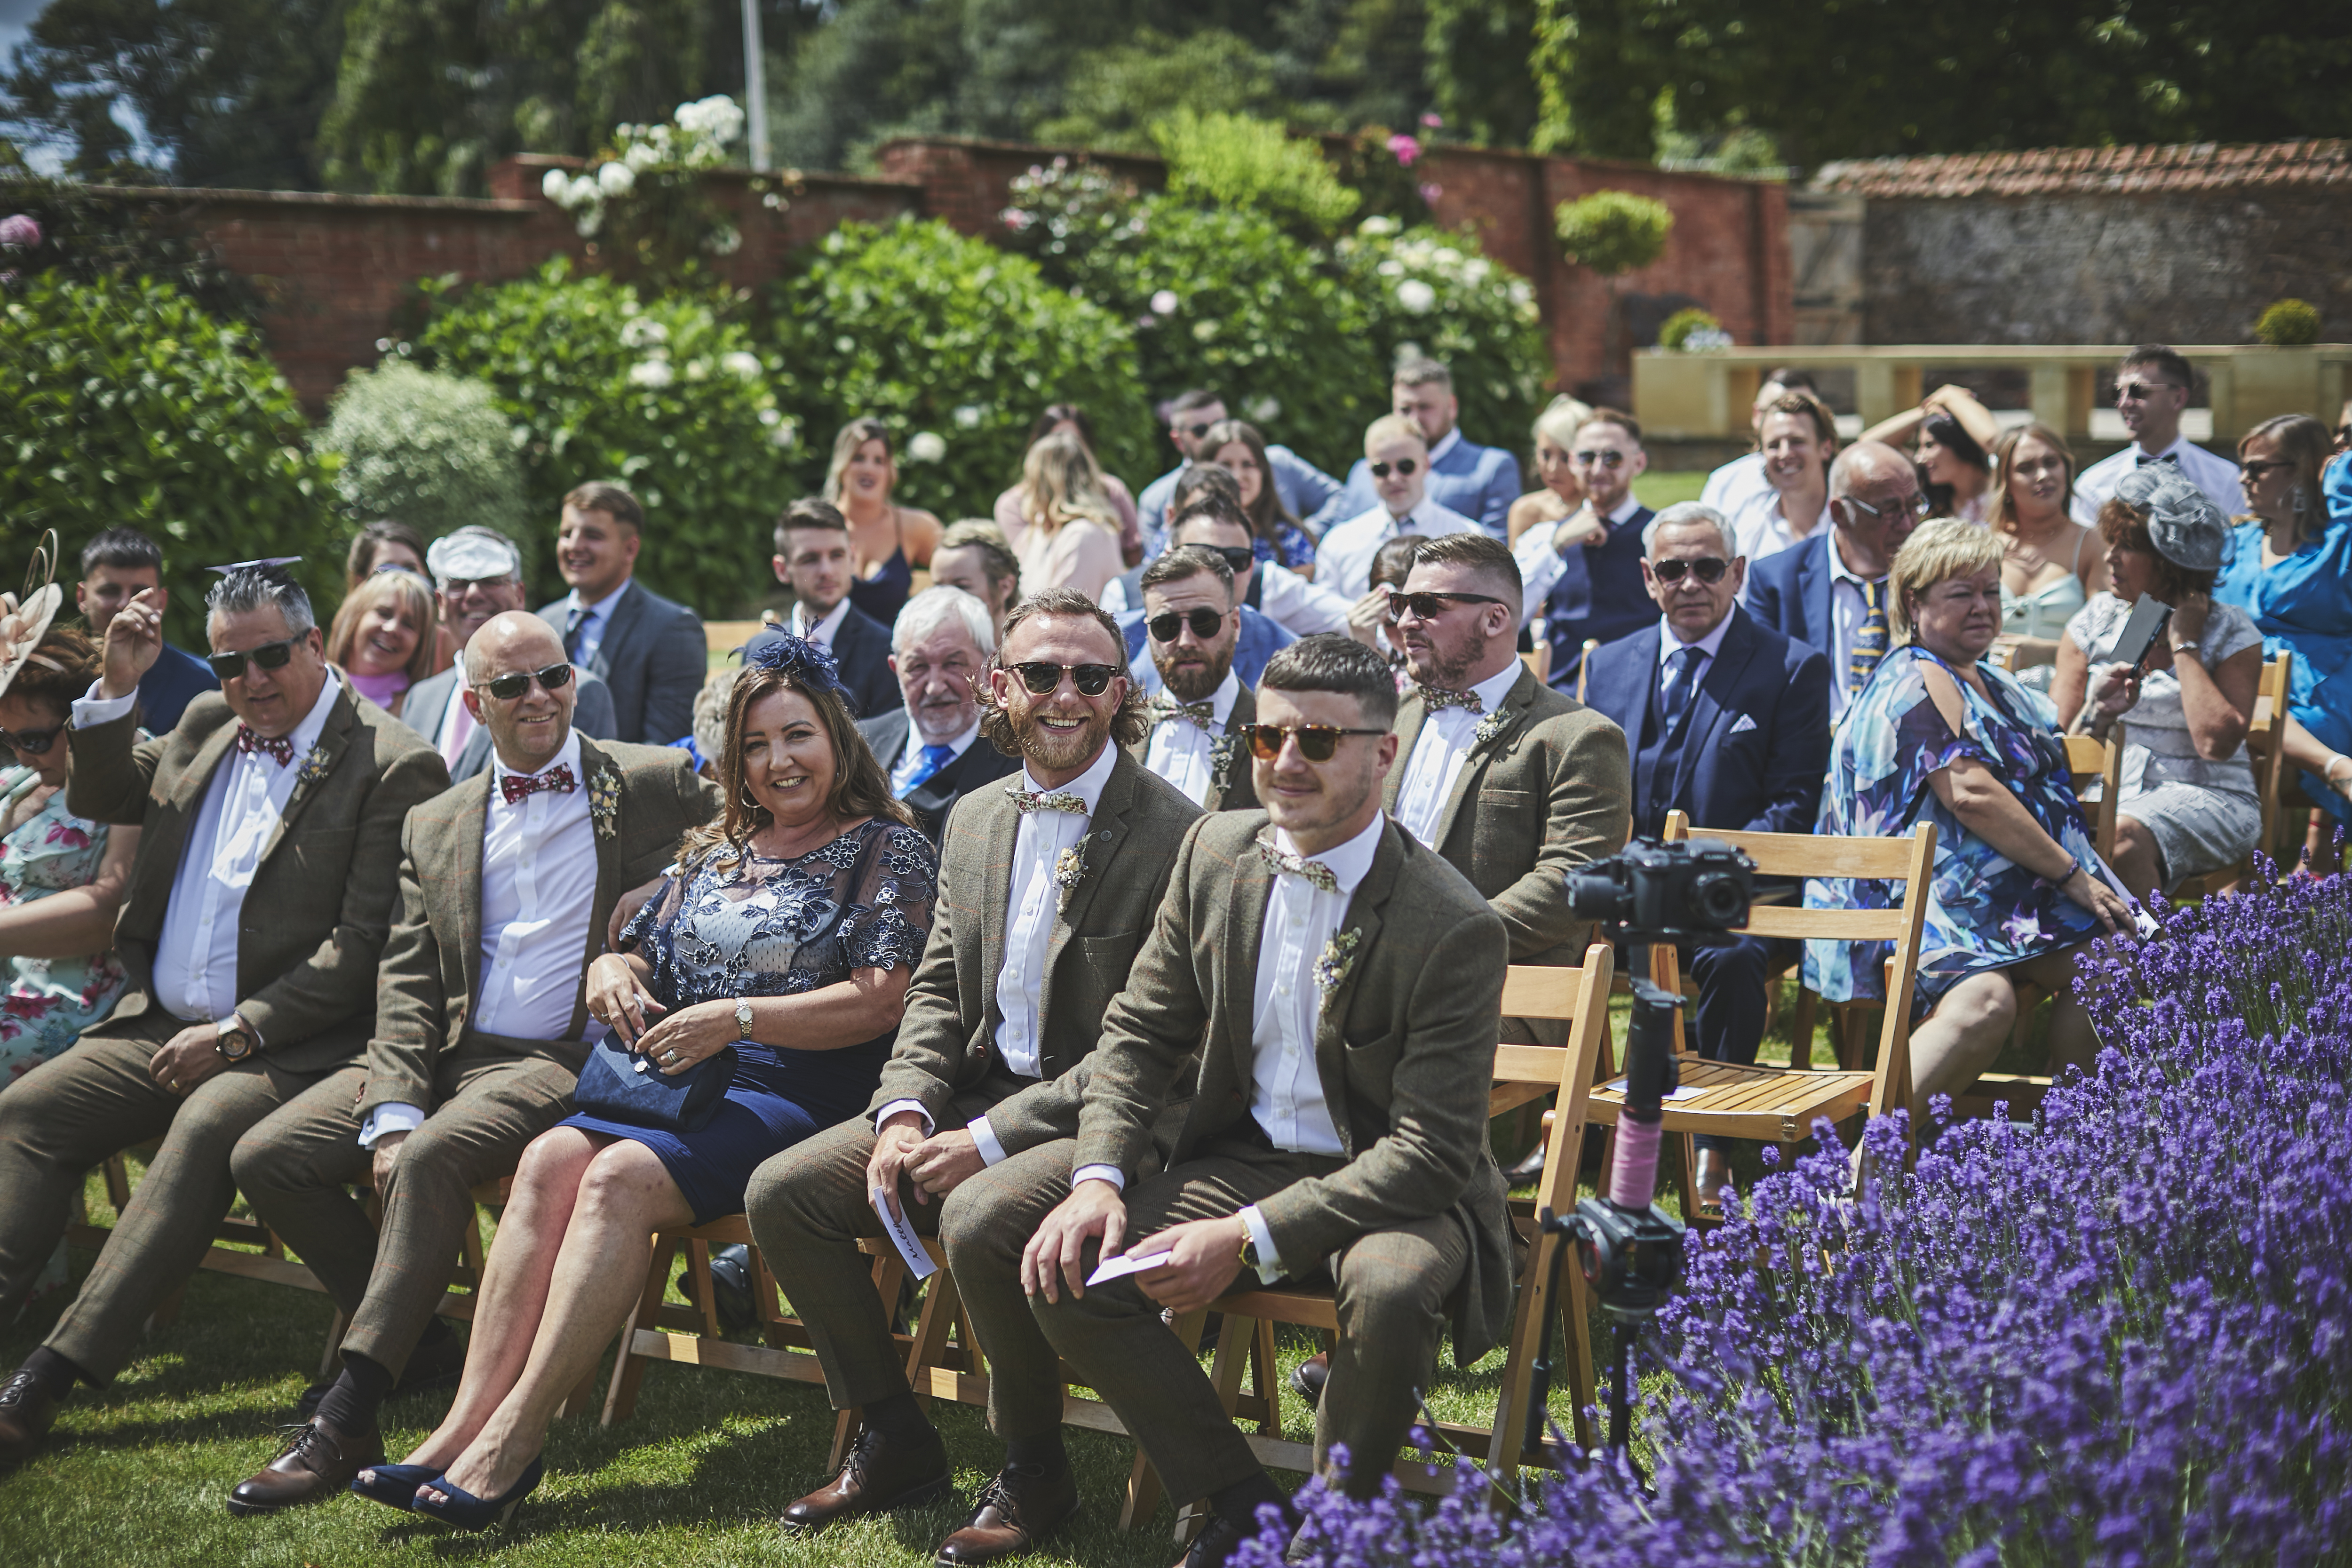 Guests seated in the Walled garden at Upton Barn await arrival of the bride